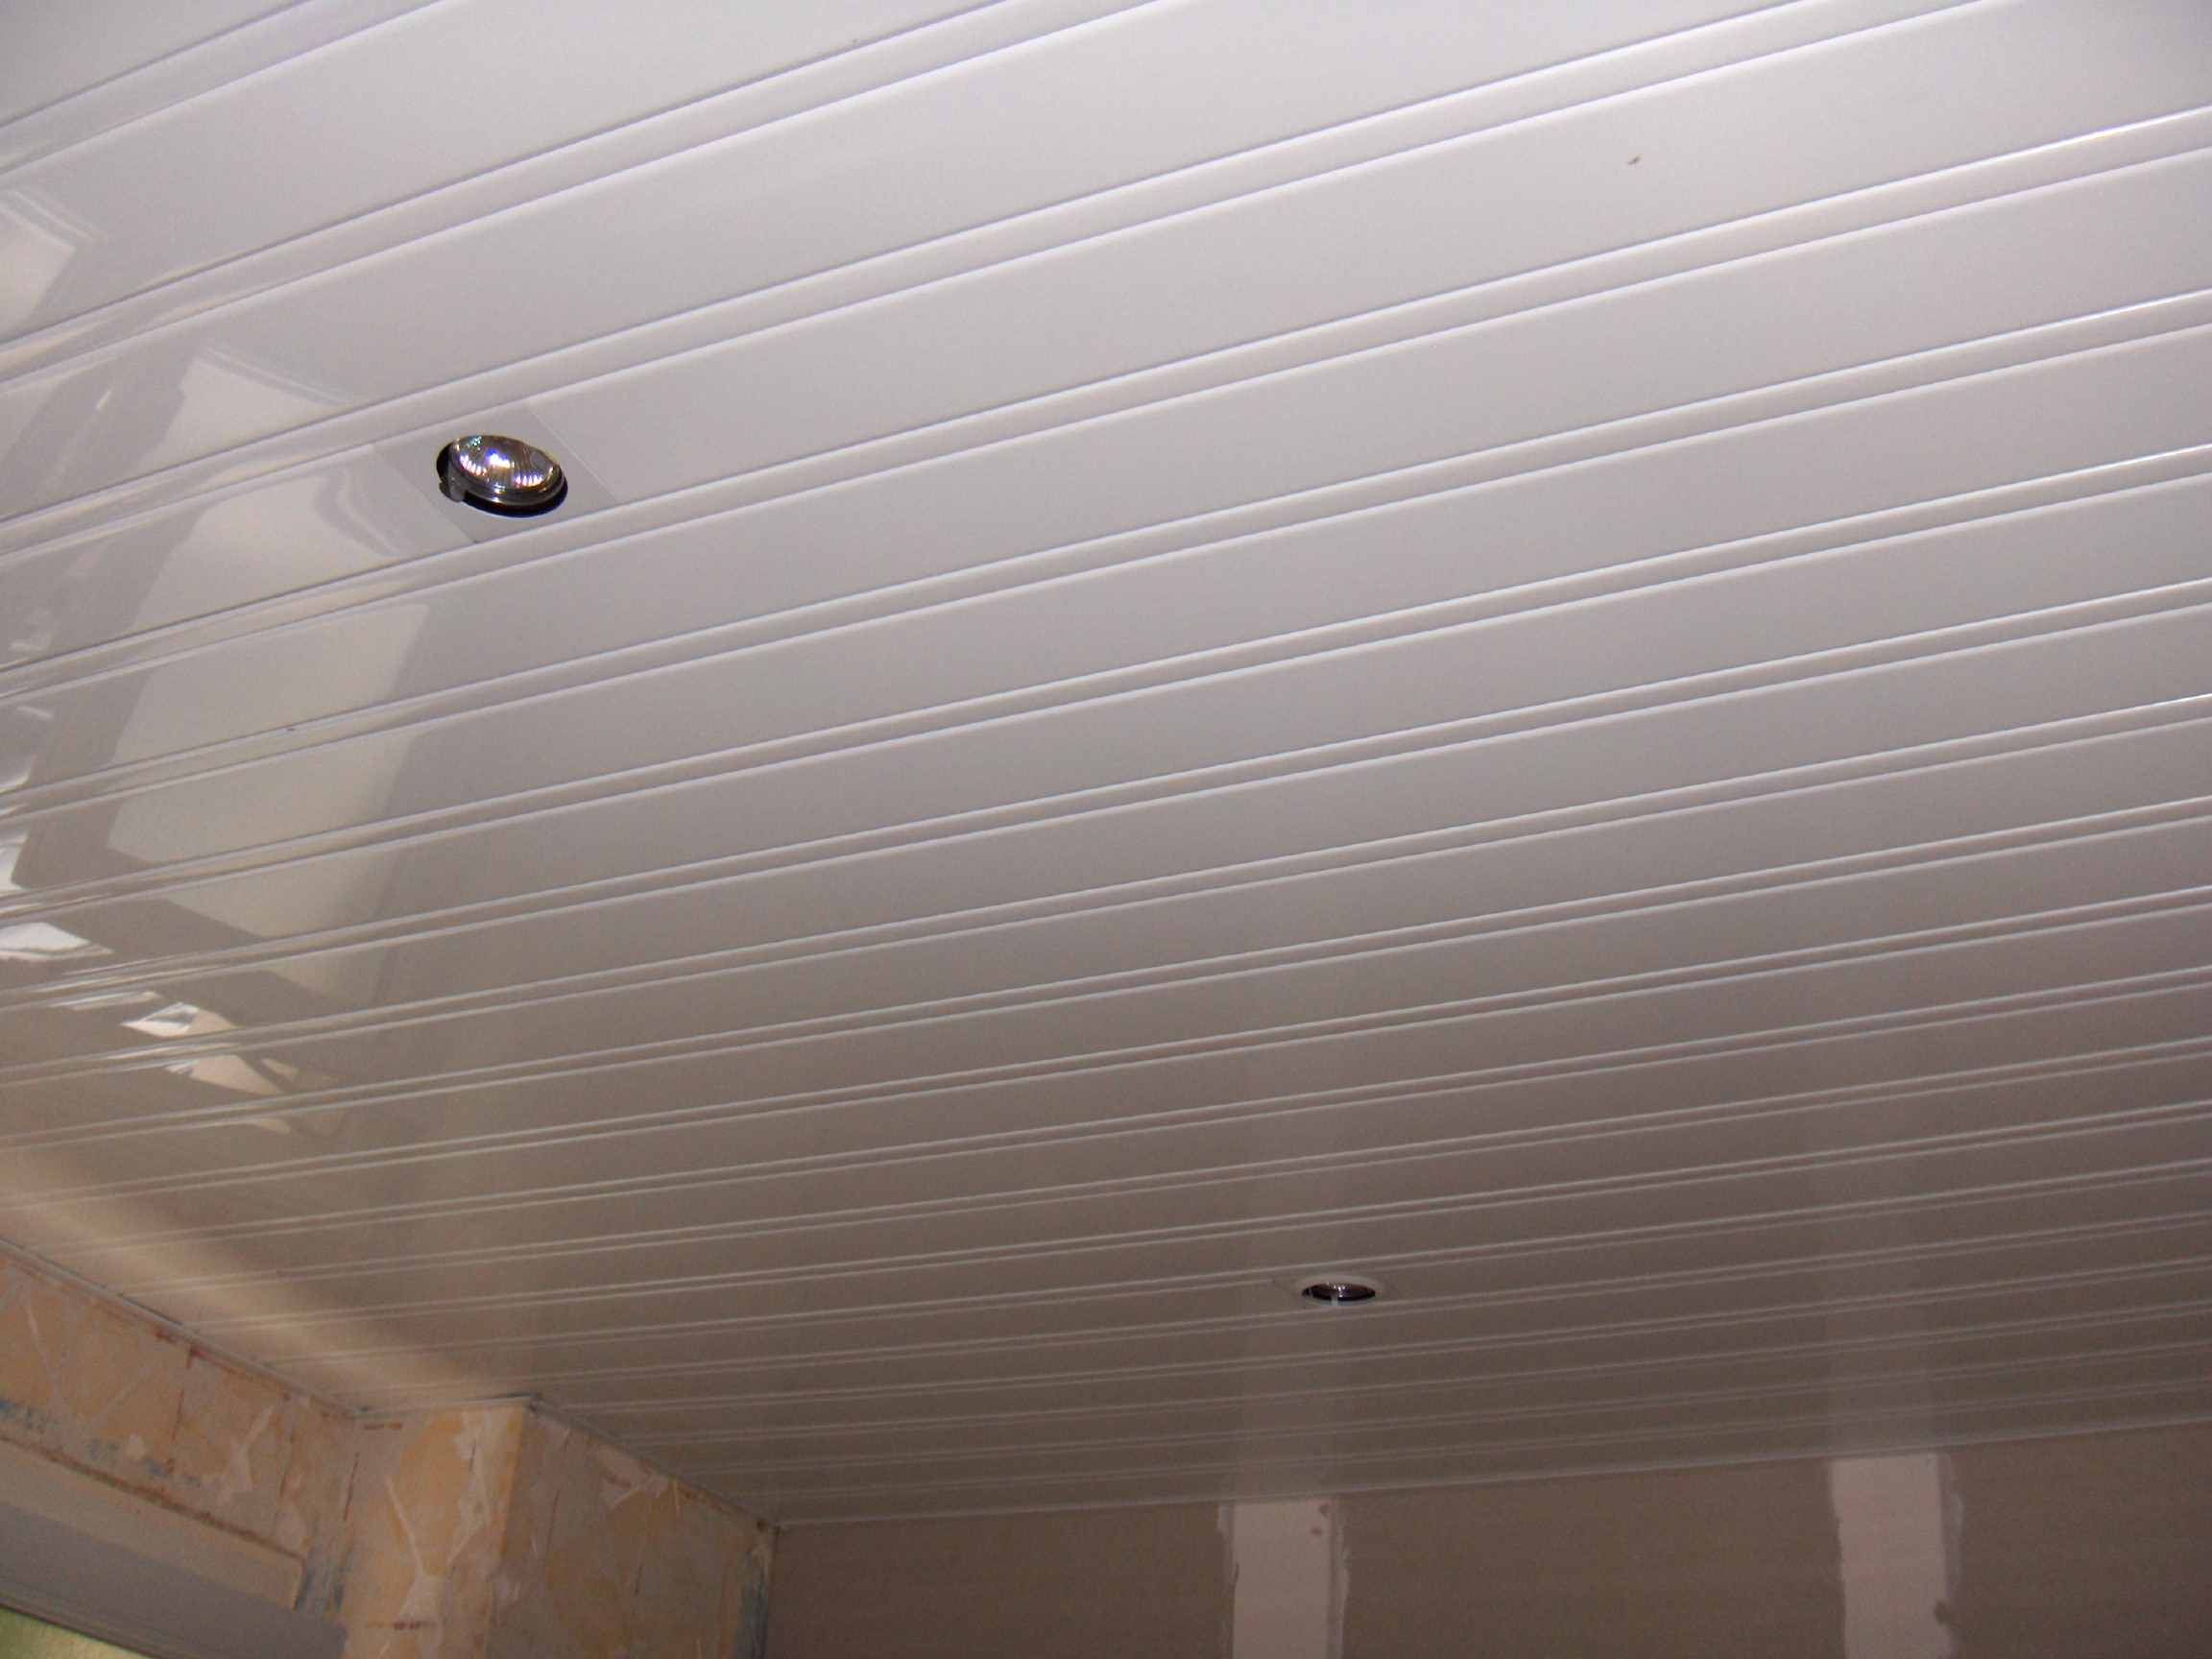 Non class pb multiservices for Pose d un plafond en lambris pvc